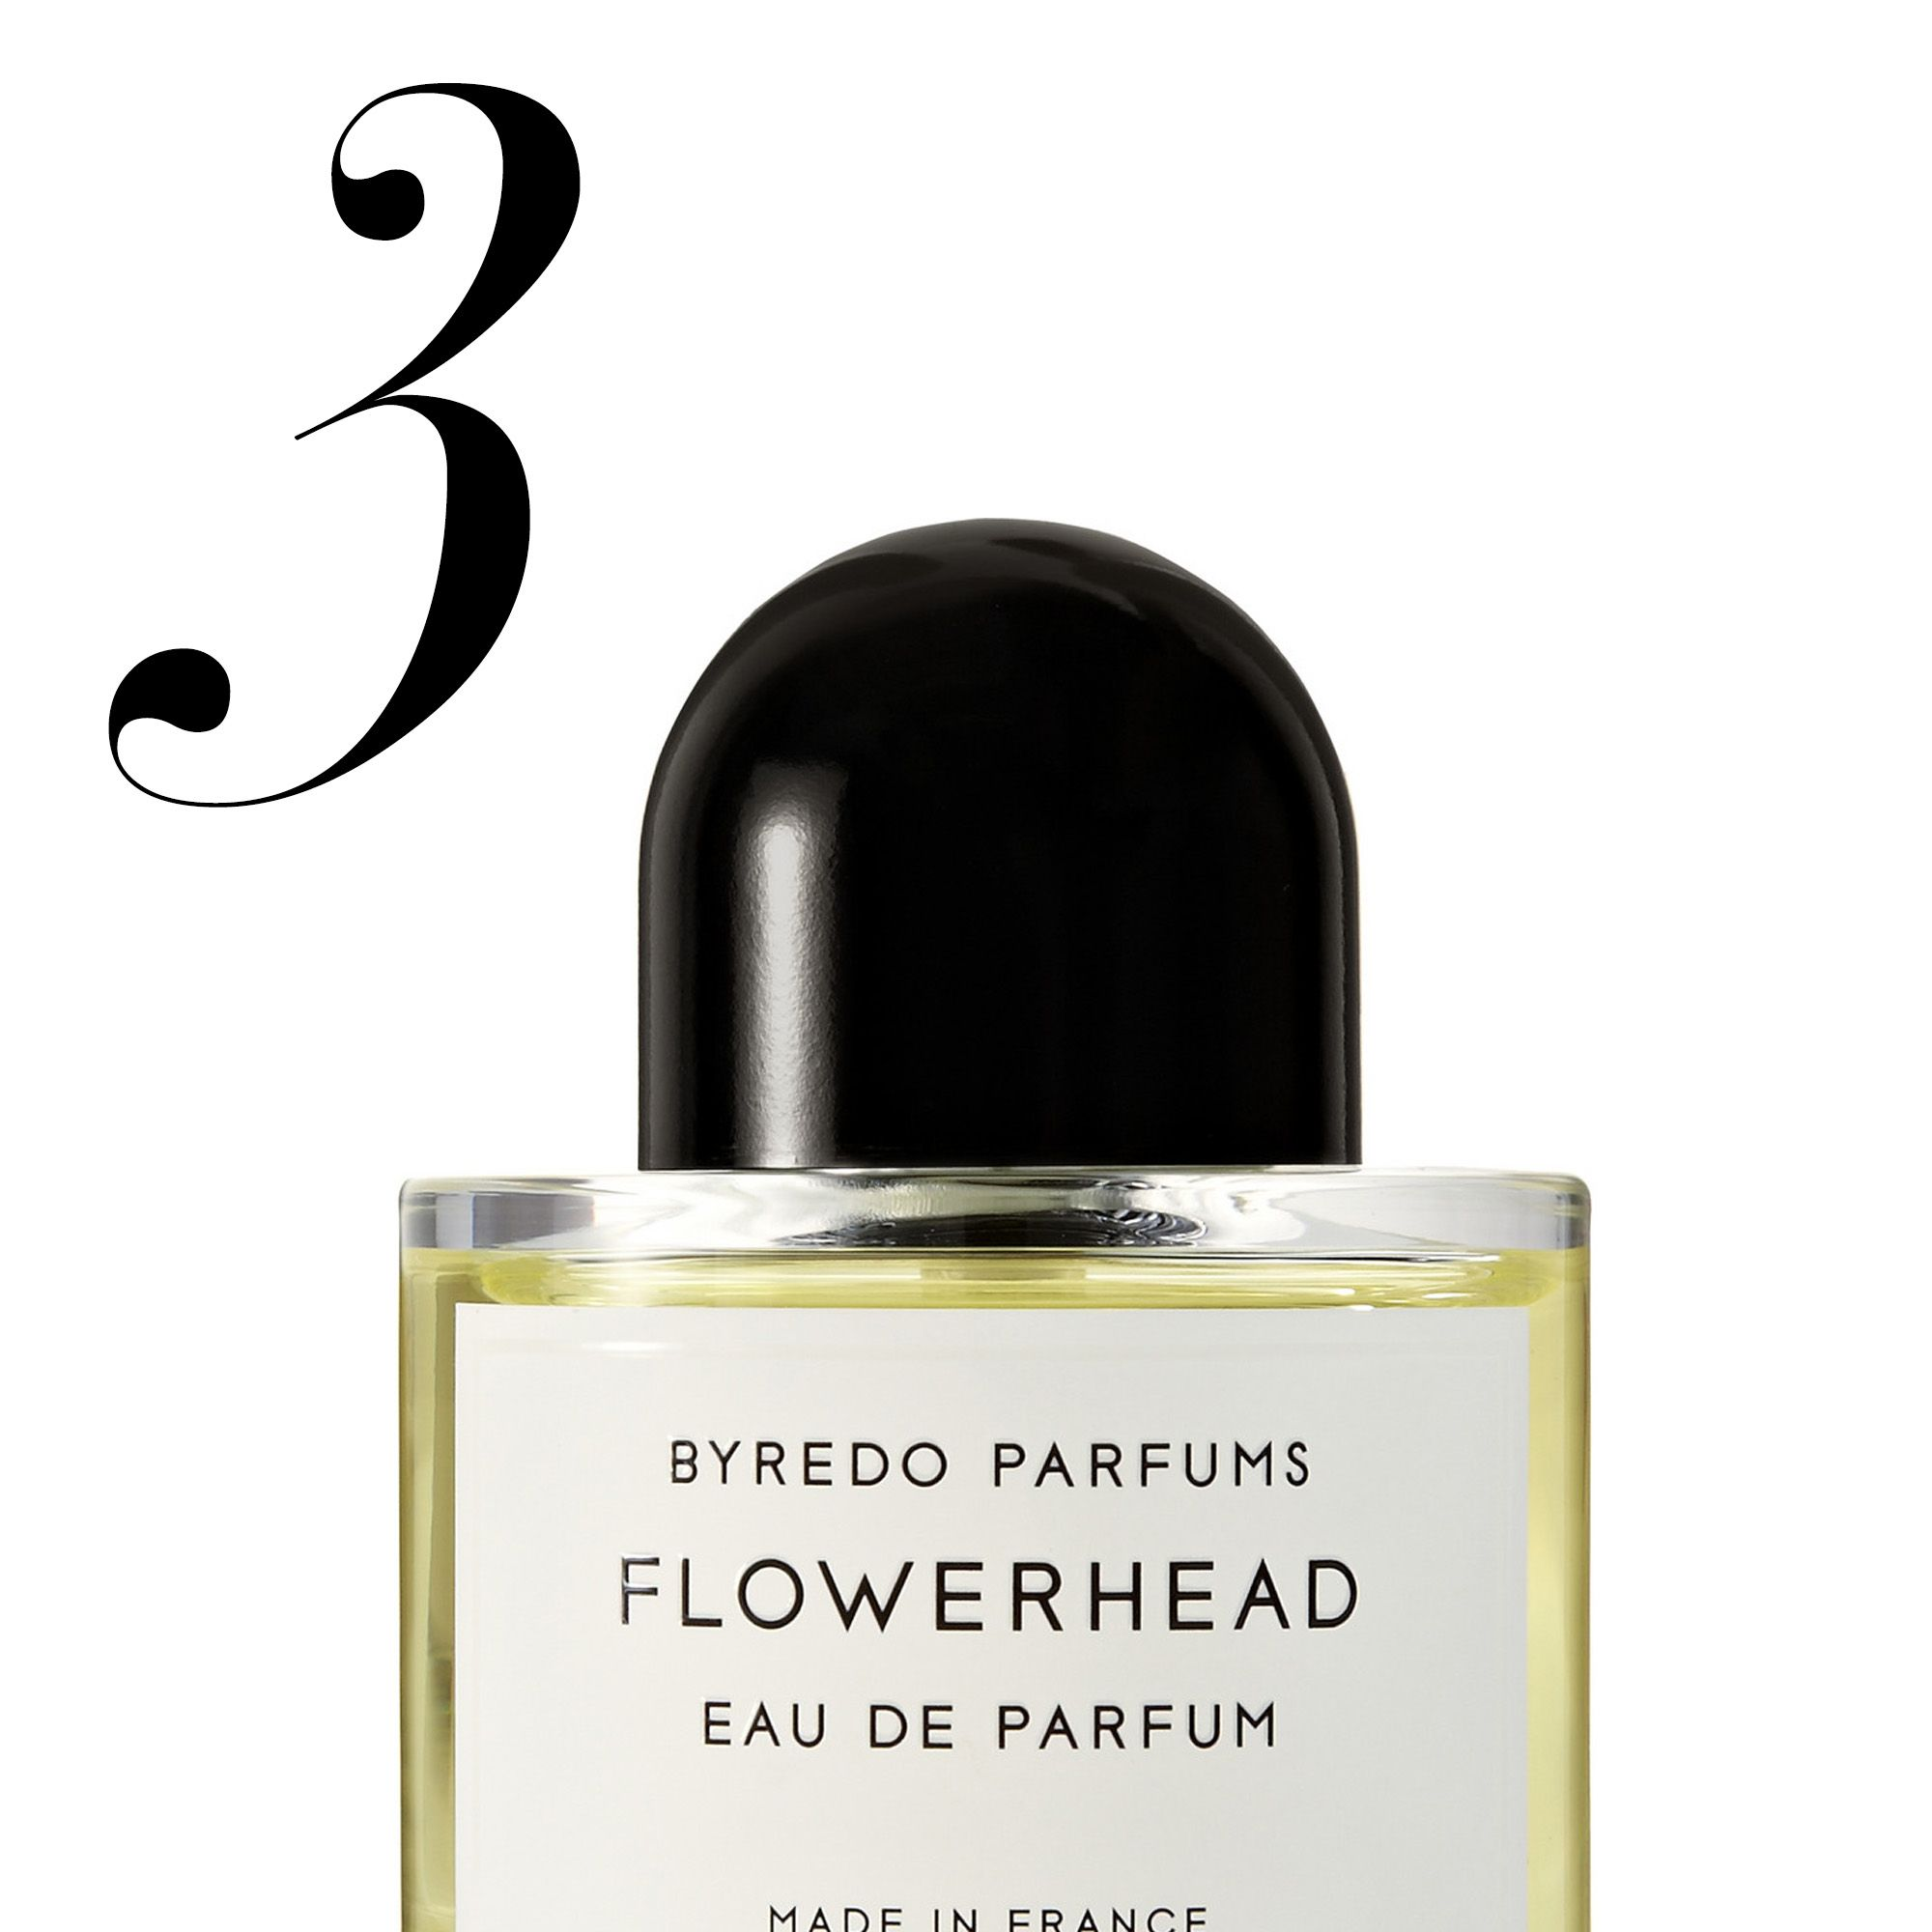 Match your scent to your look with the new fragrance inspired by the rich floral scents of an Indian wedding. 